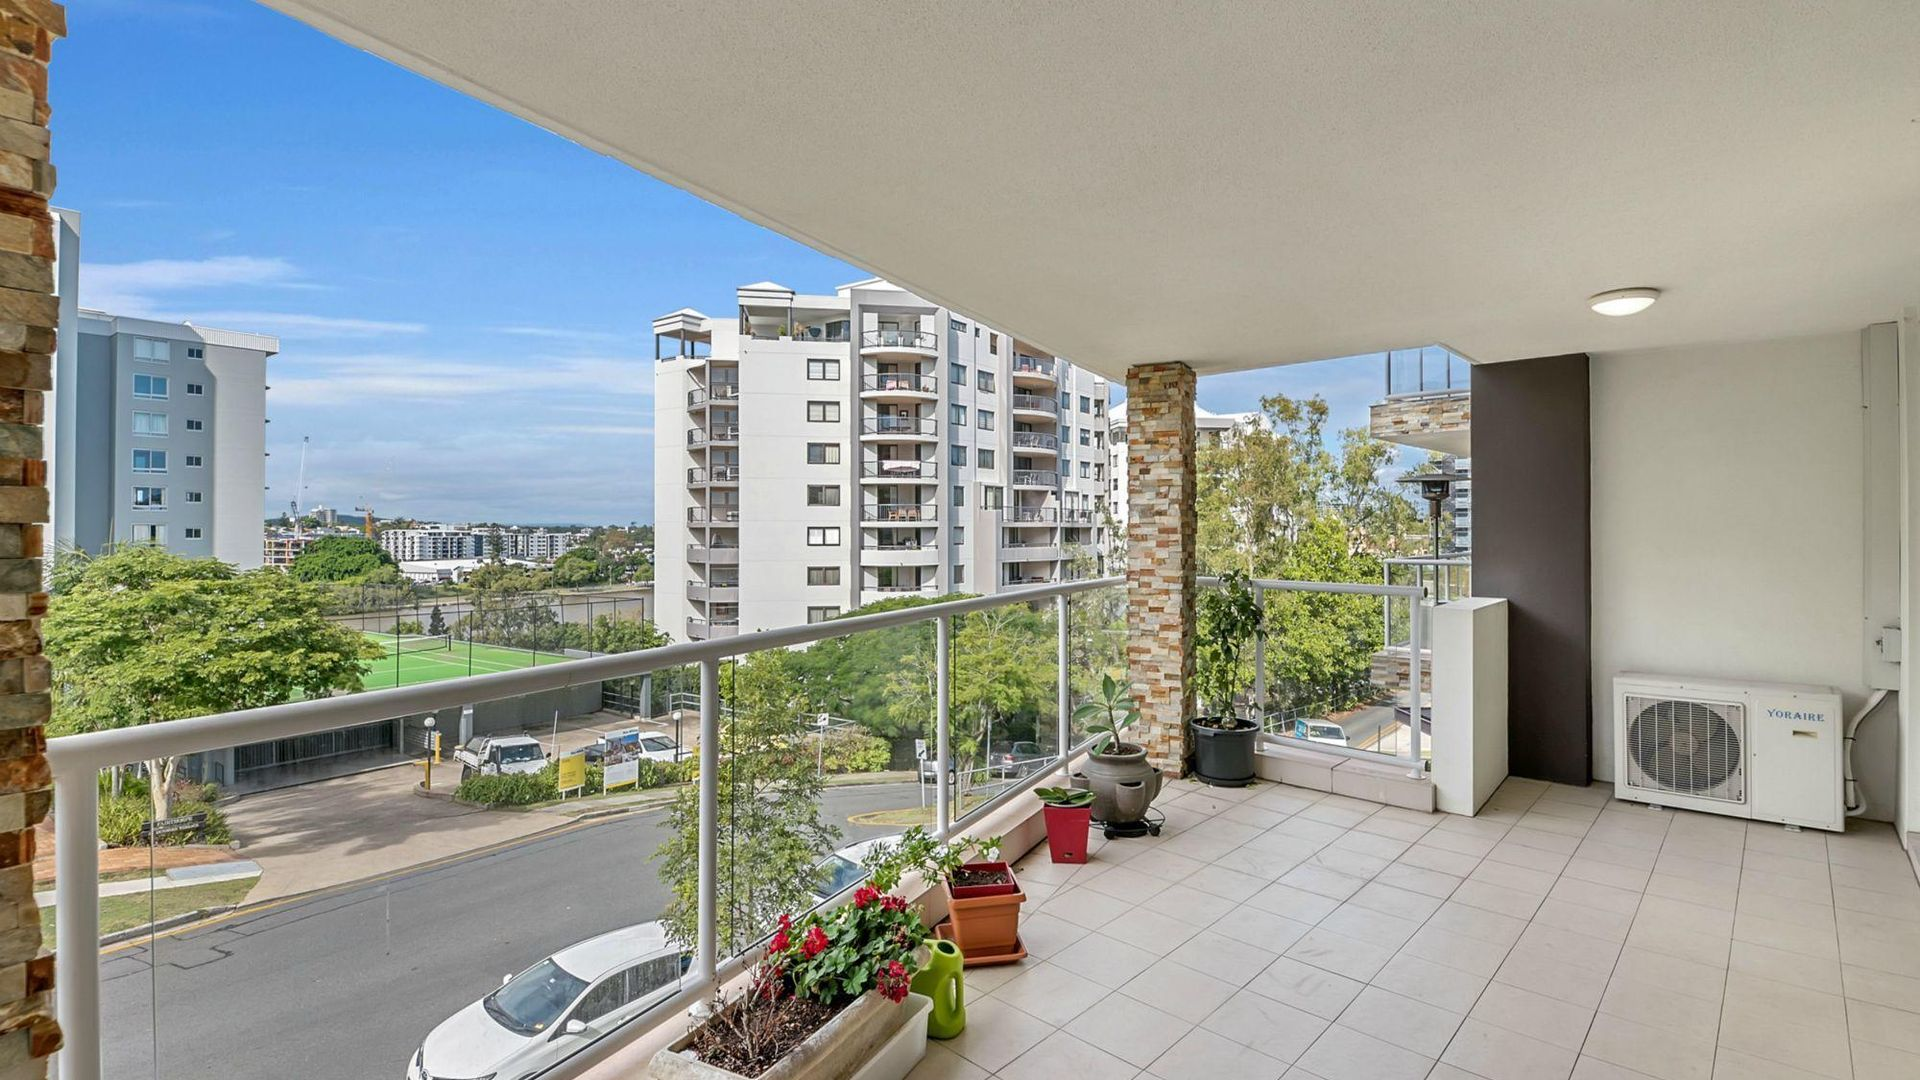 20/53 Dunmore Terrace, Auchenflower QLD 4066, Image 1